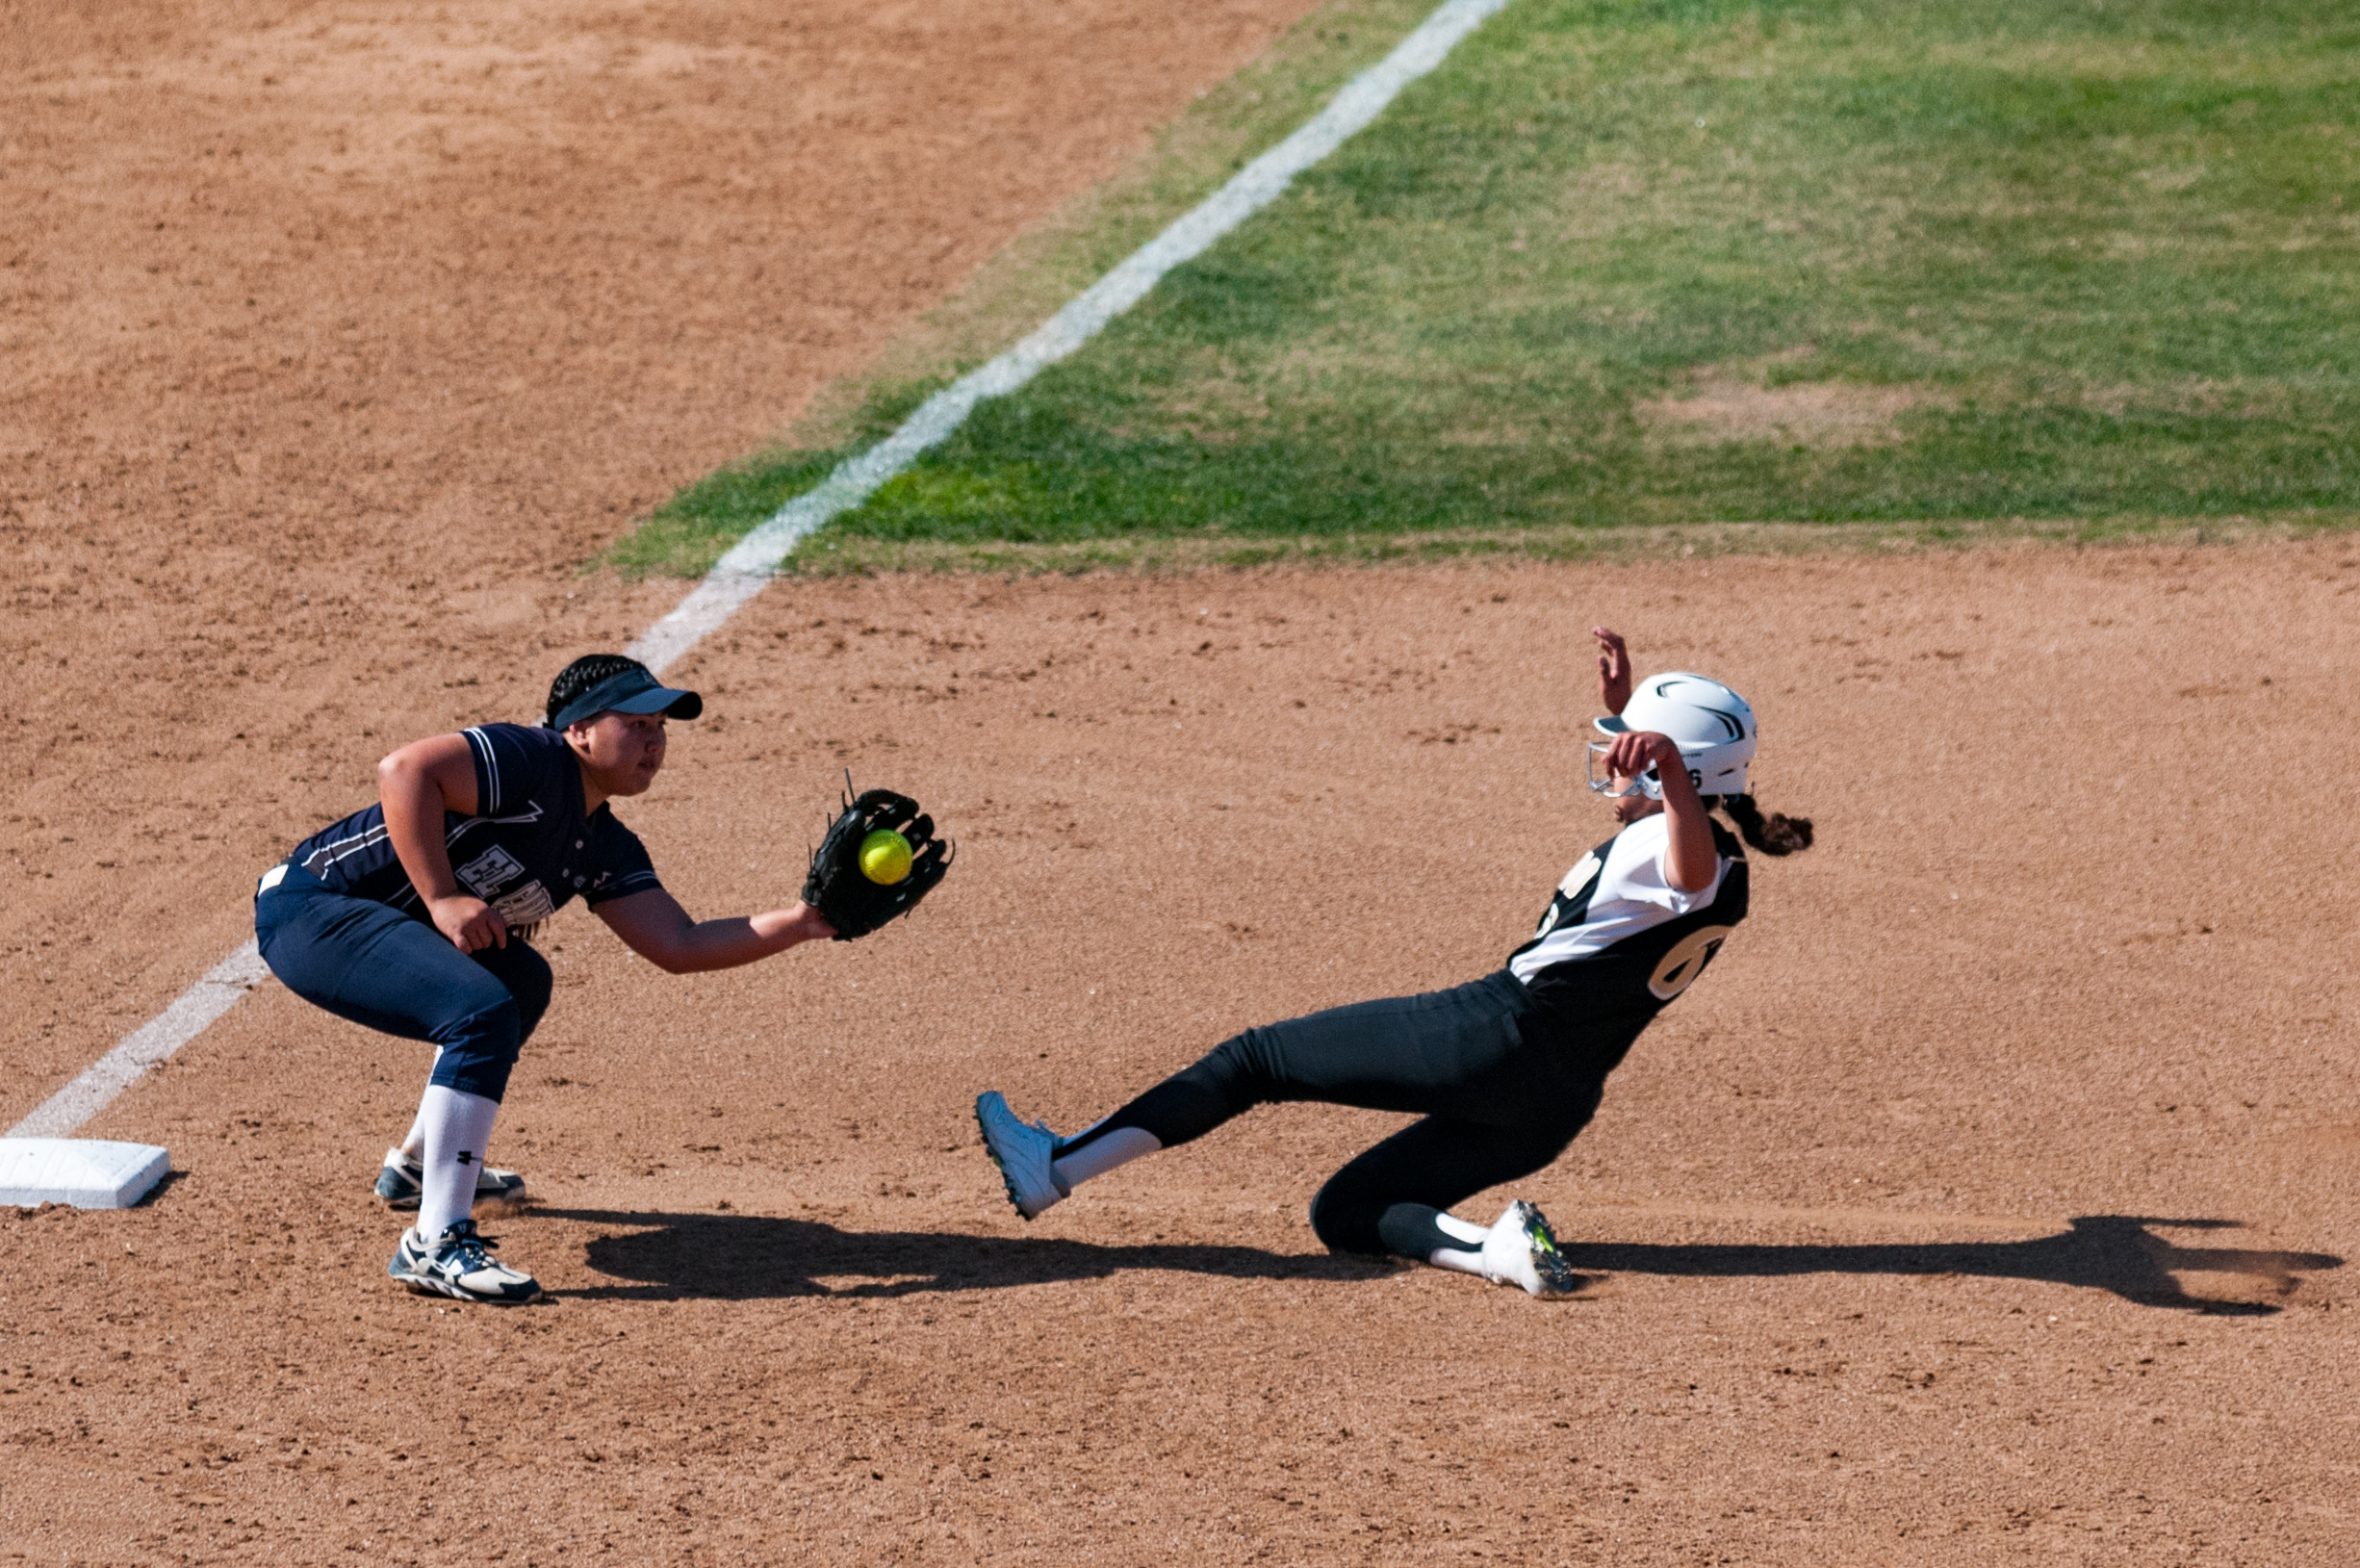 El Camino softball team beat Rio Hondo College to extend its winning streak to 17 games